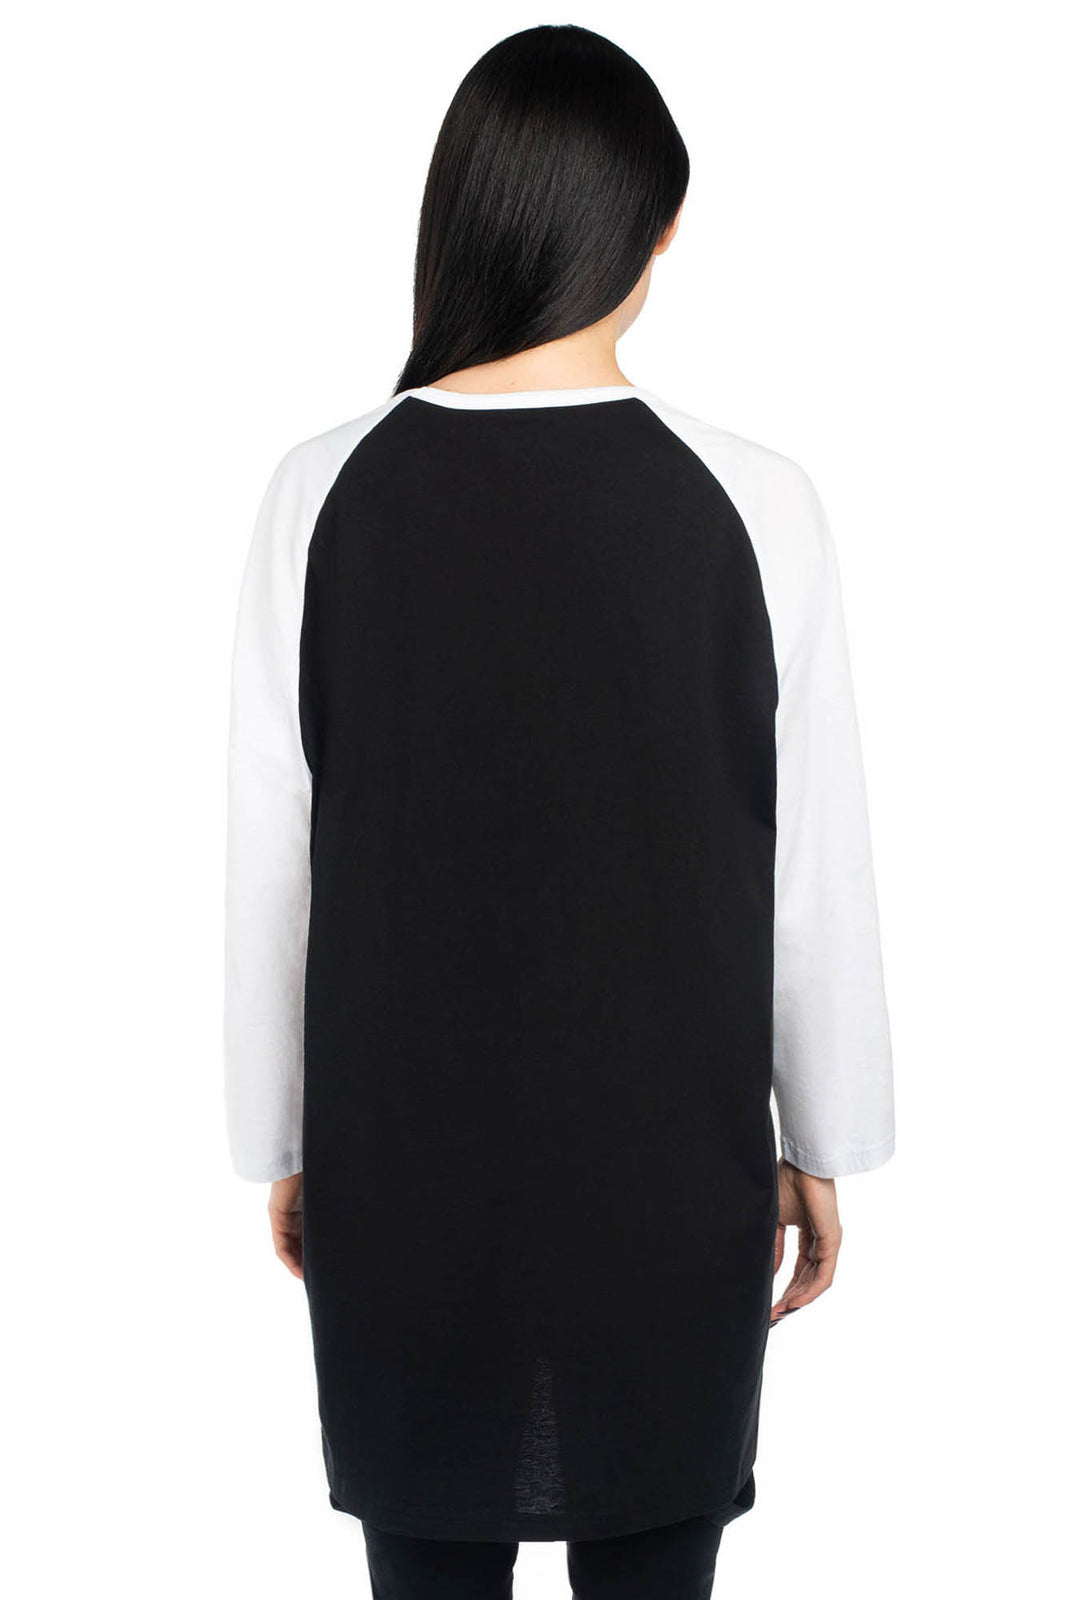 Ew People Raglan Top